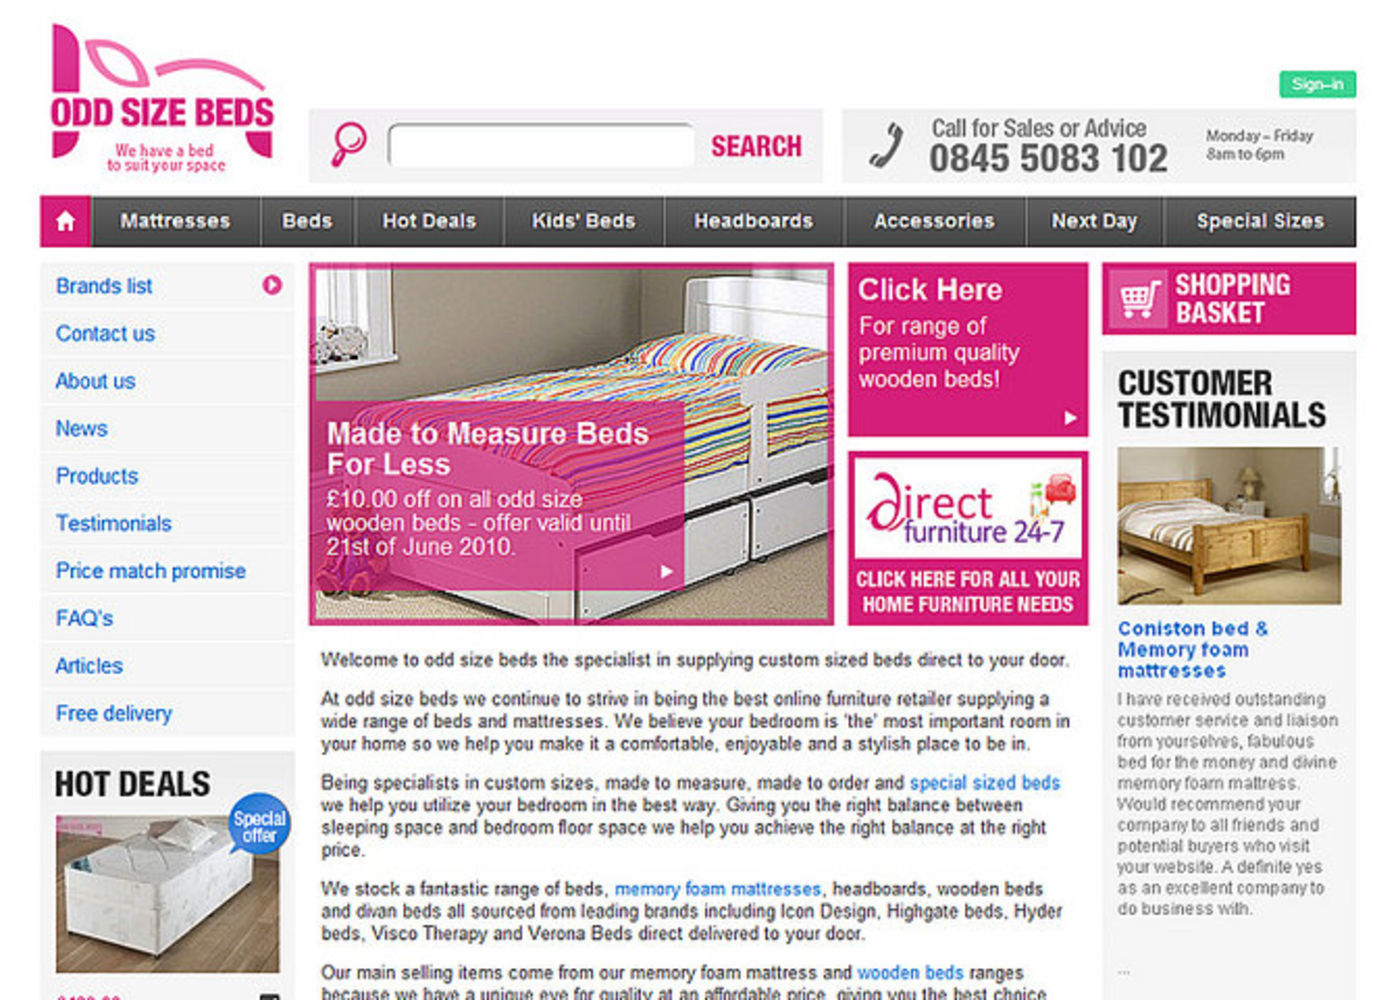 Odd Size Beds Homepage header